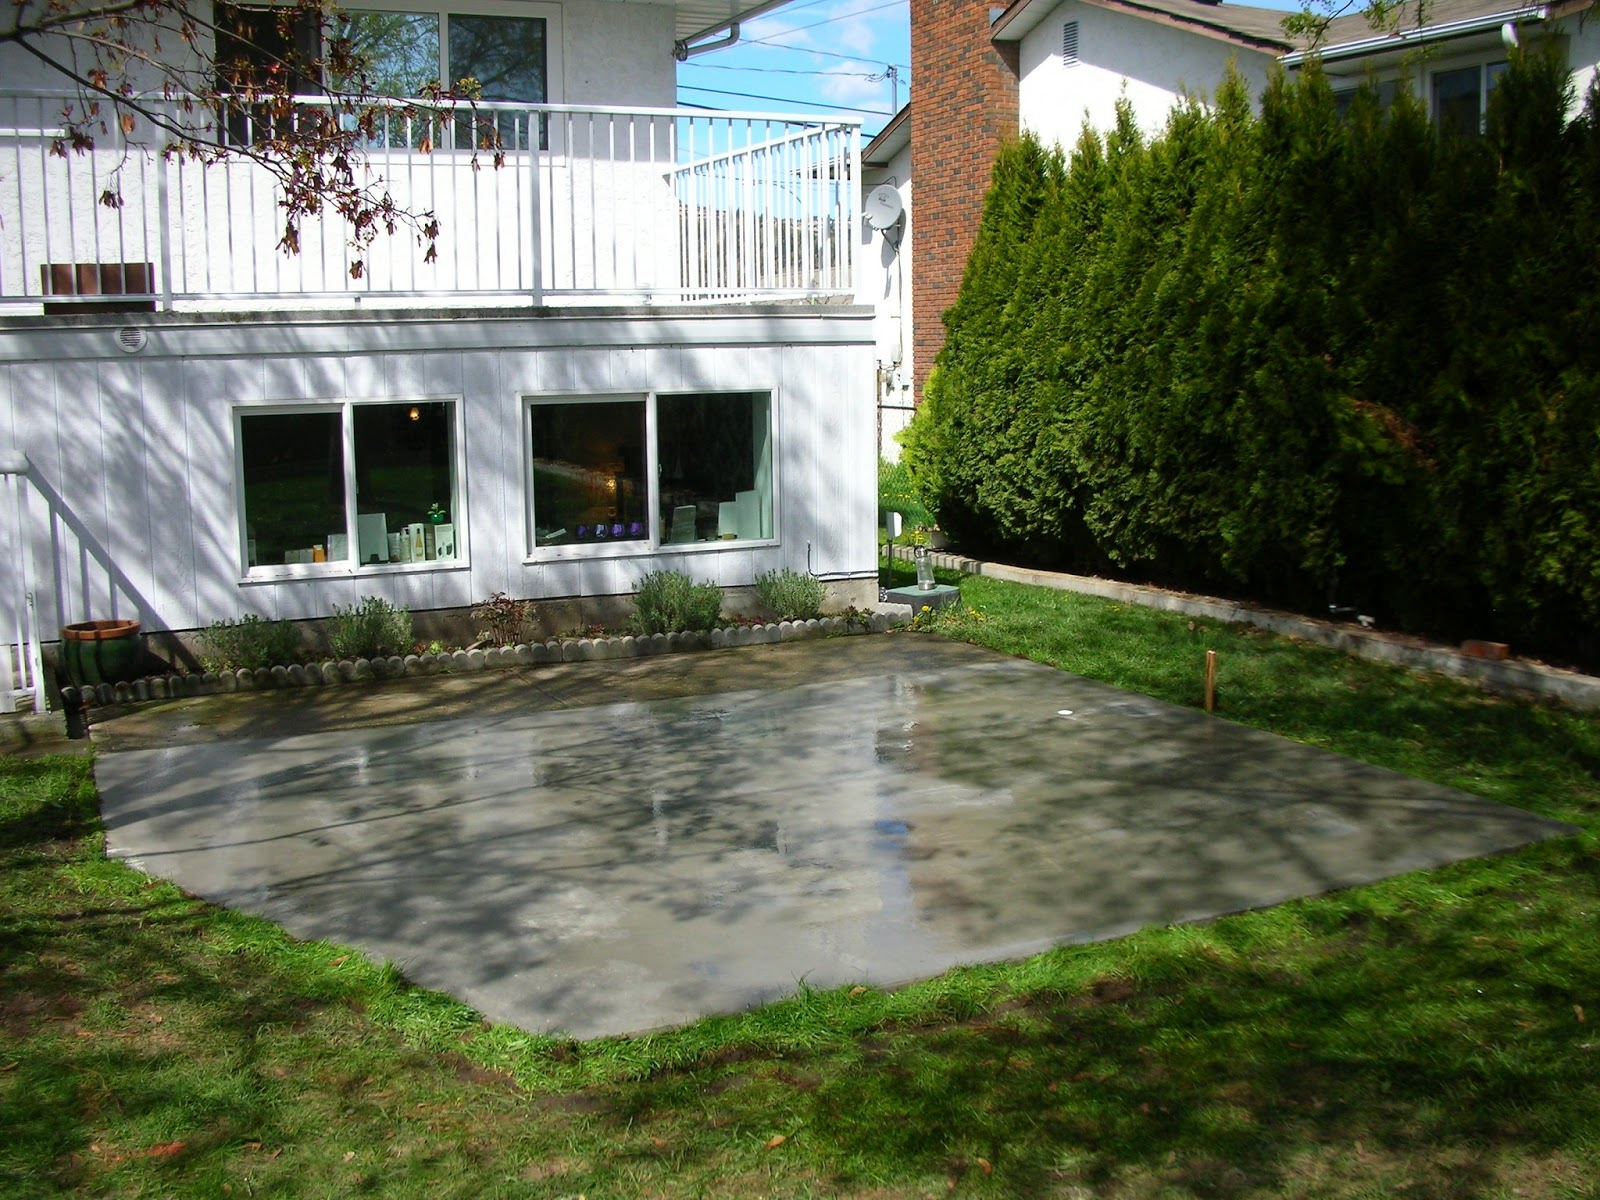 Jacuzzi Pool And Spa Kelowna Mode Concrete Concrete Patios Concrete Slabs Driveways